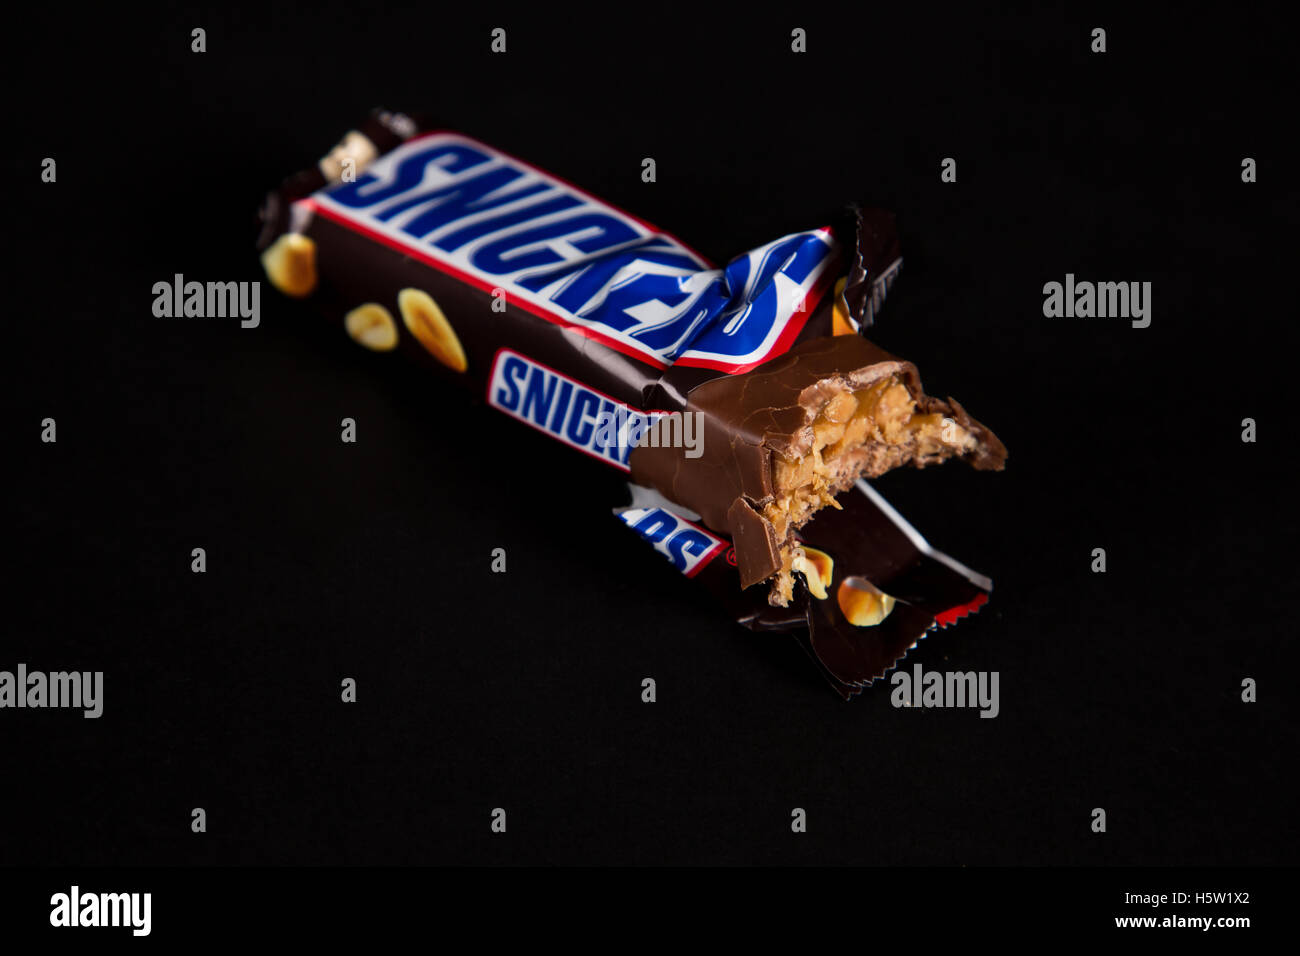 a close up on a snicker bar which somebody has been taking a bite of